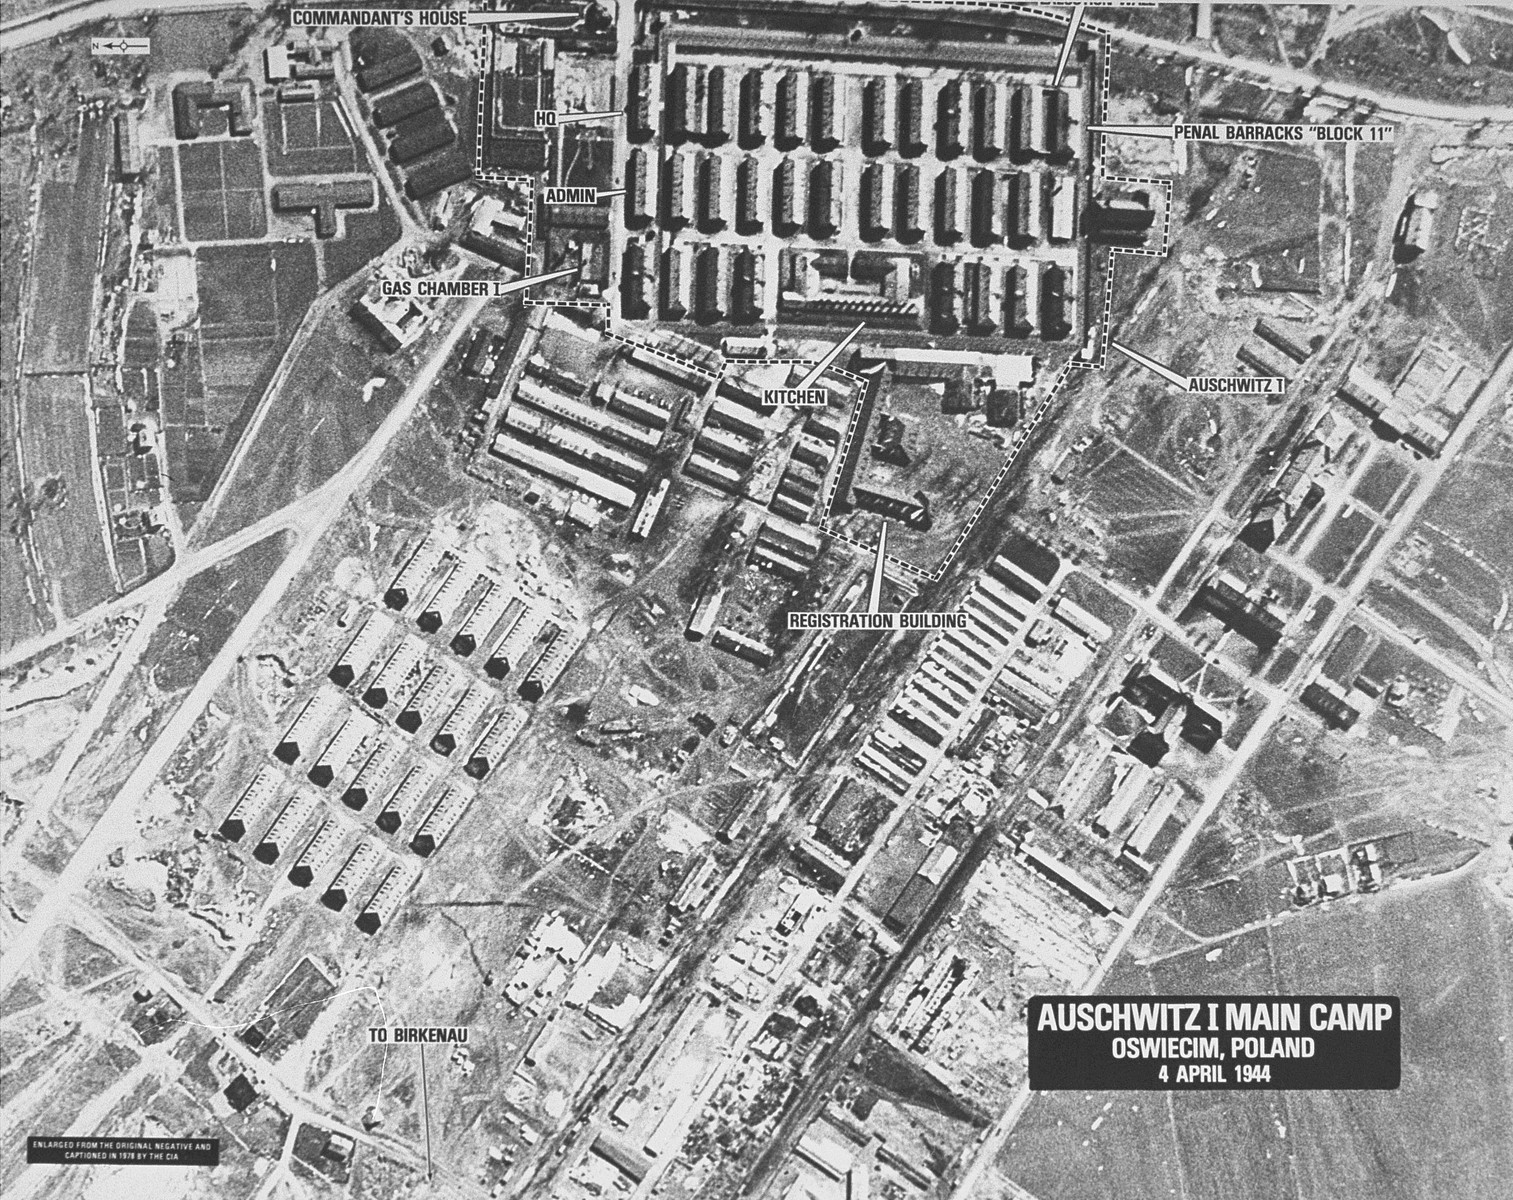 An aerial reconnaissance photograph of the Auschwitz concentration camp showing the Auschwitz I camp.